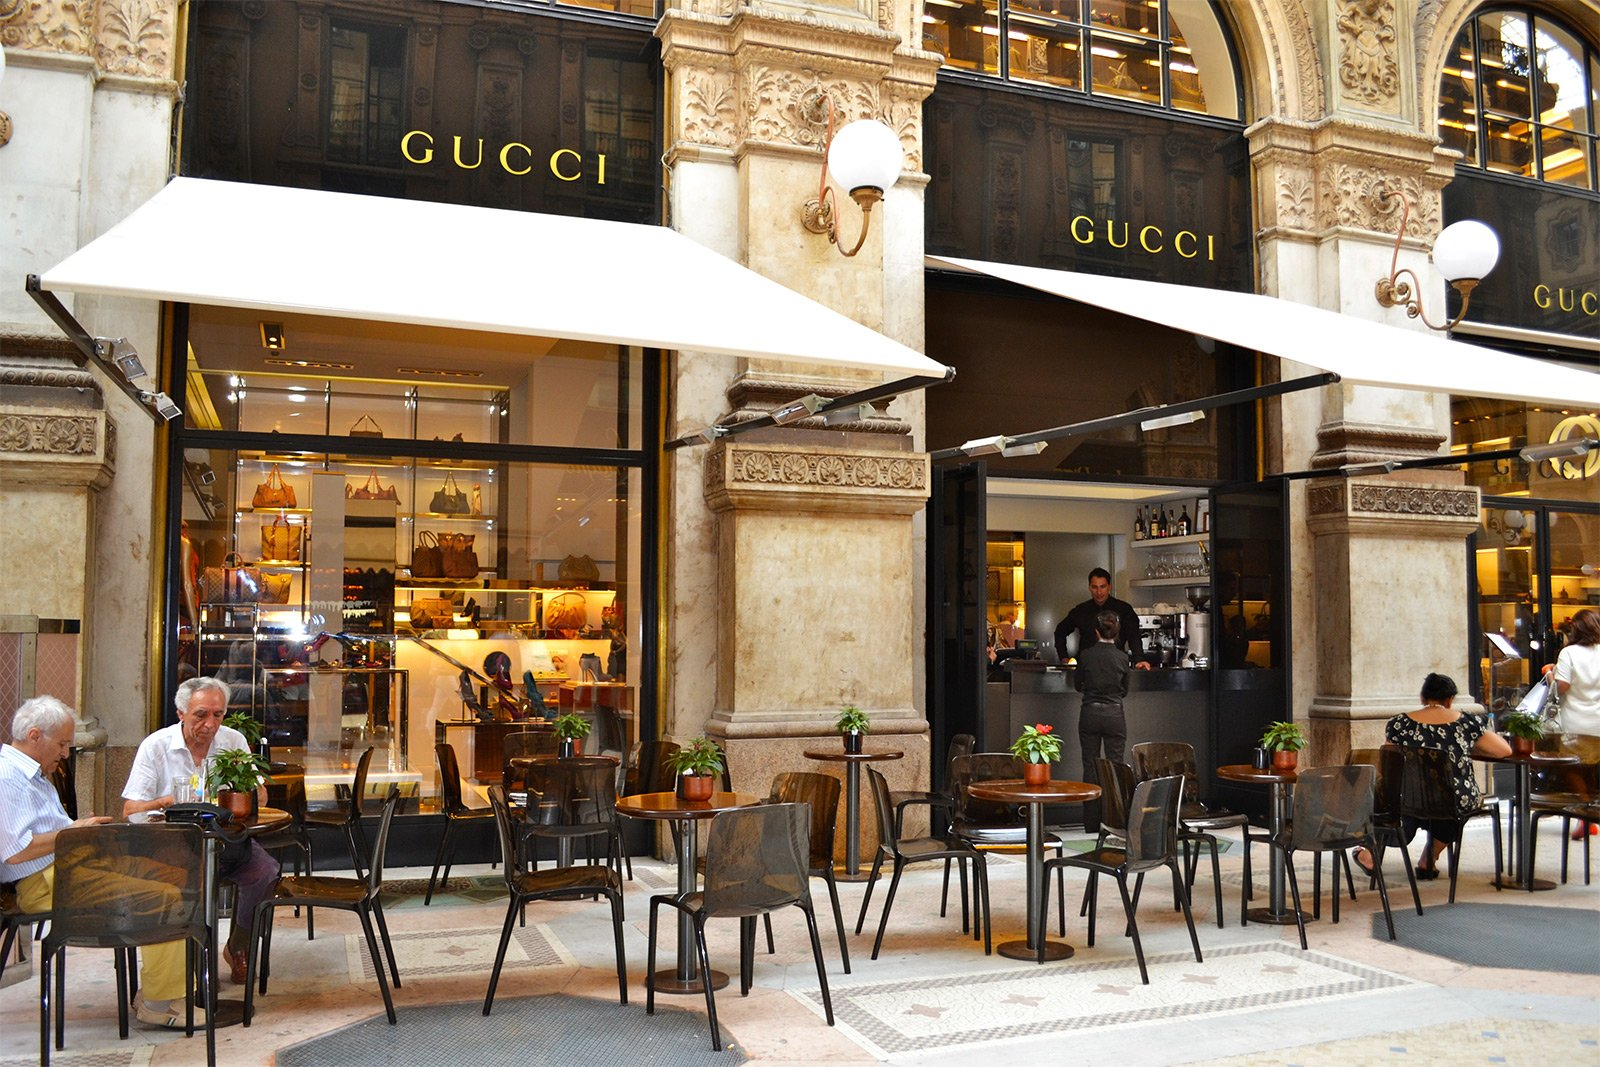 Gucci caf milan for Best coffee in milan